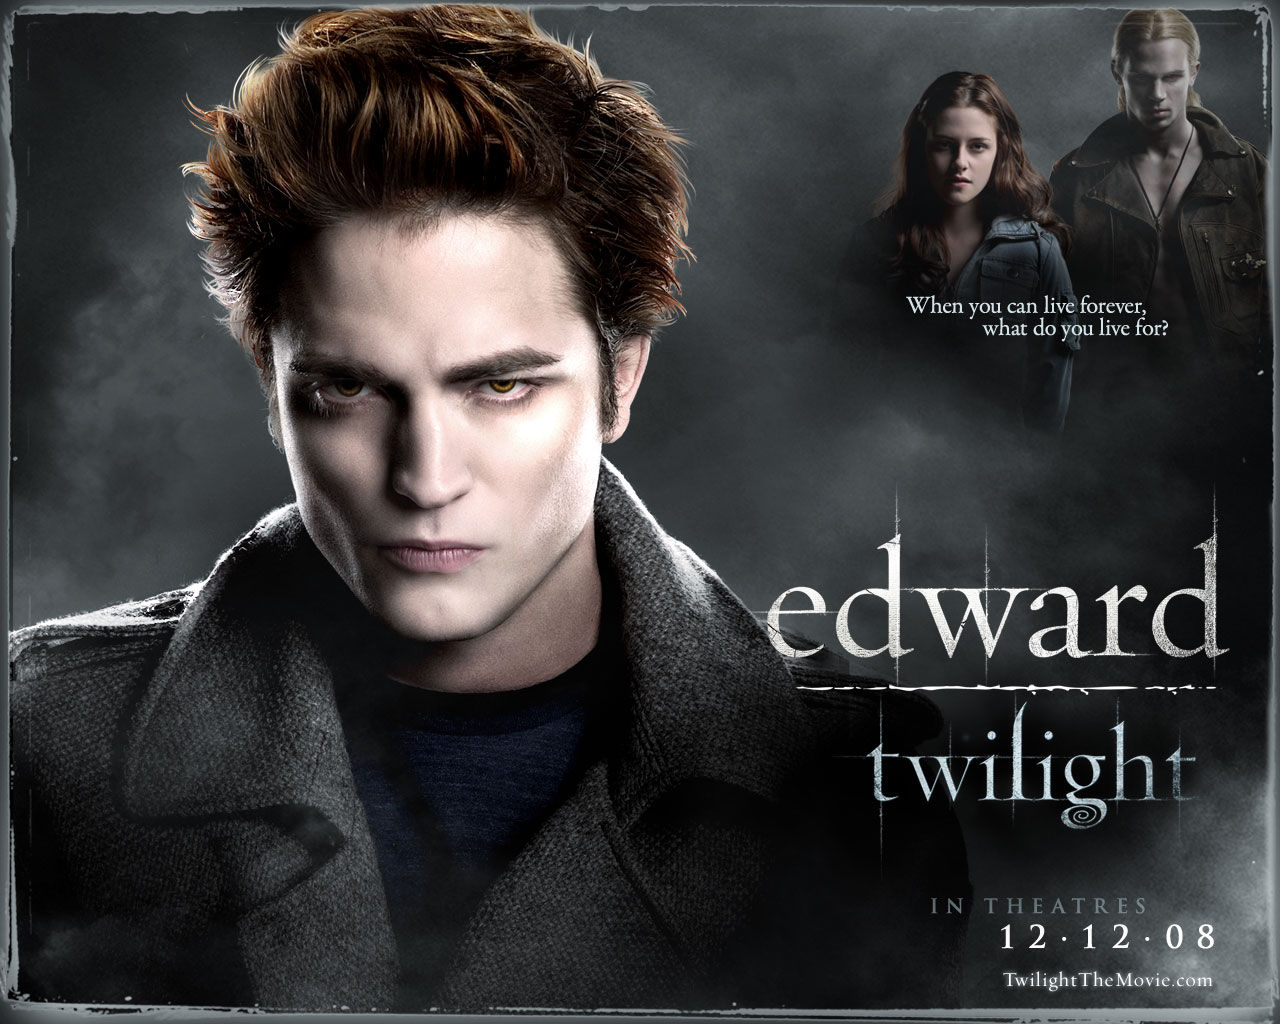 http://1.bp.blogspot.com/-ToN_C0NWuDA/TzvbQR6jmeI/AAAAAAAAAEY/8FA8MS6n5iE/s1600/Twilight+Movie+Wallpaper+1.jpg